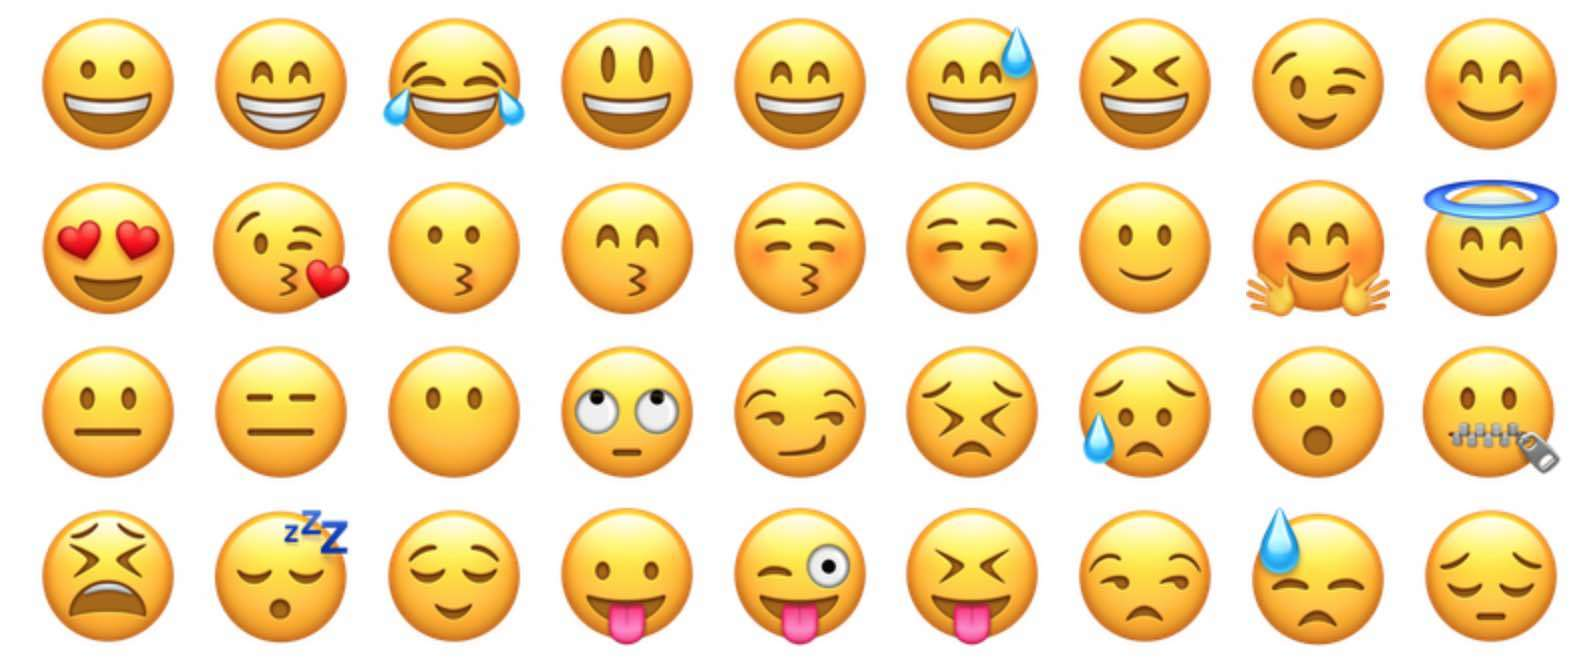 new-whatsapp-emojis.jpg